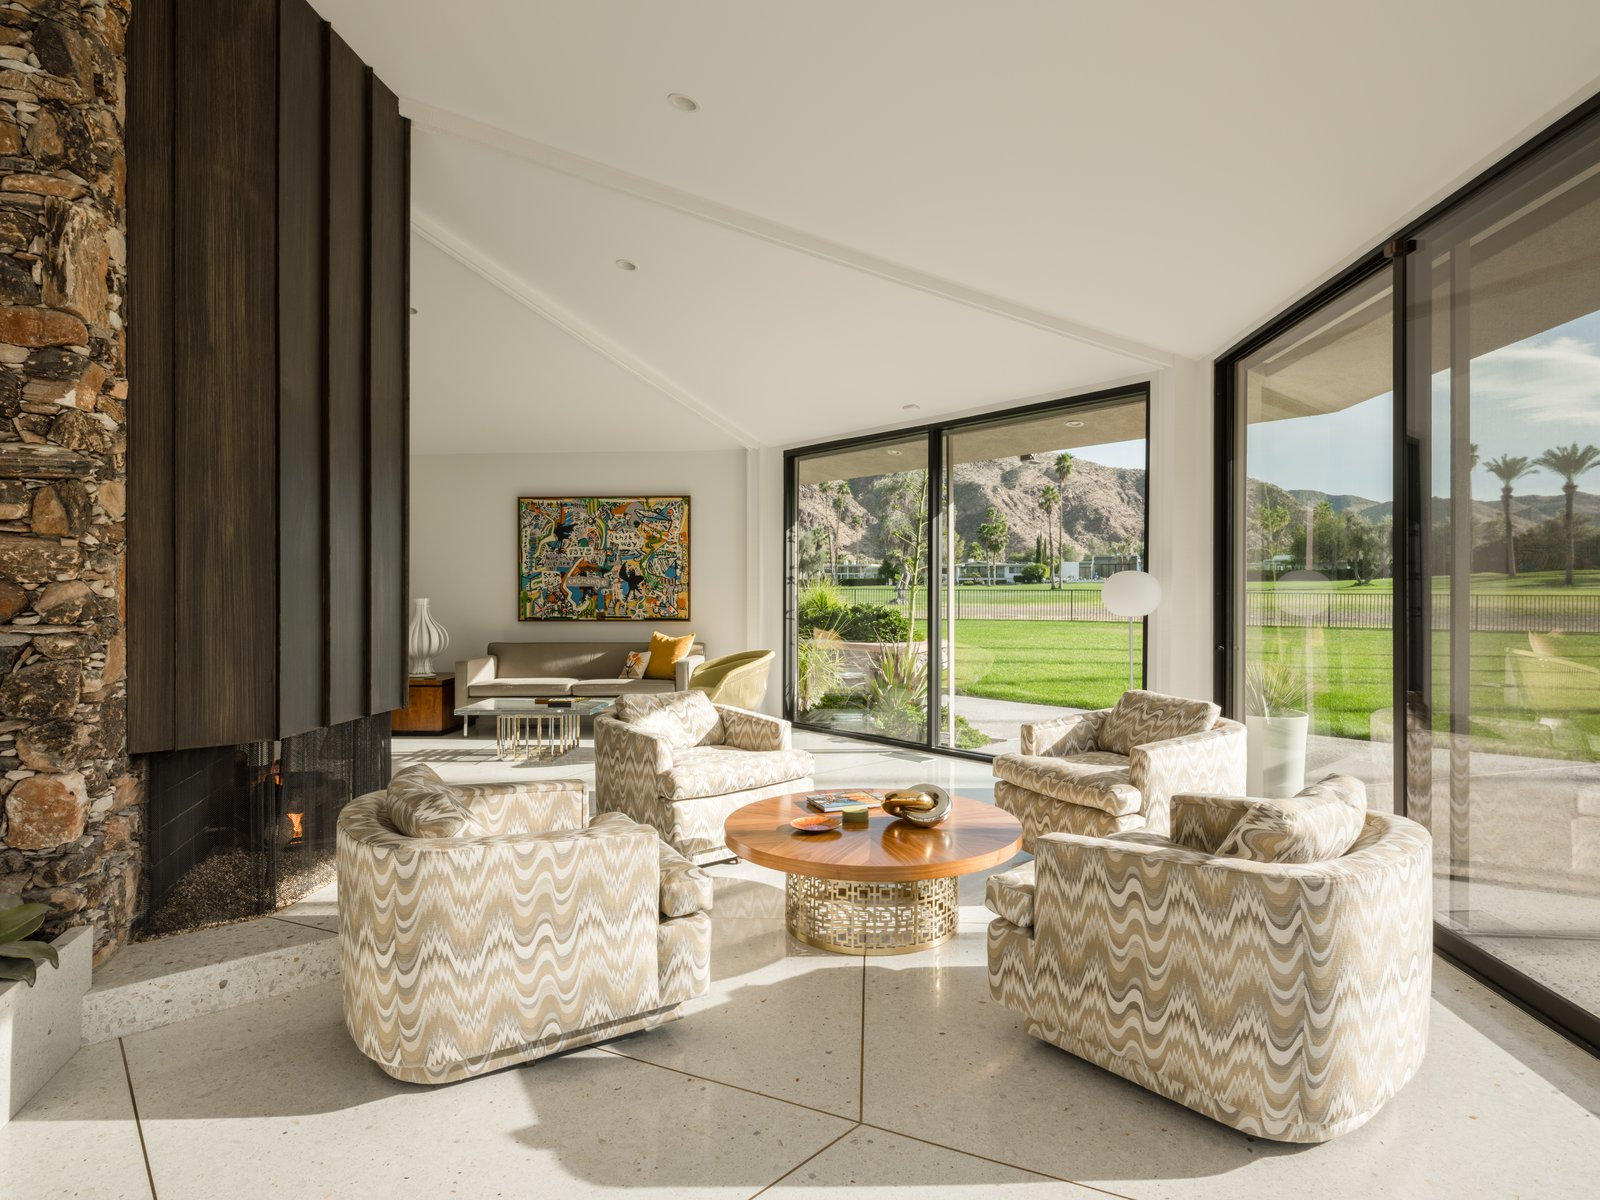 Living, Coffee Tables, Two-Sided, Sofa, Chair, Terrazzo, Floor, End Tables, Lamps, Recessed, and Table An alternate view of the living space and wood-paneled fireplace.  Living Two-Sided Sofa Coffee Tables Terrazzo Photos from Own William Krisel's Palm Springs Pod House For $2.5M